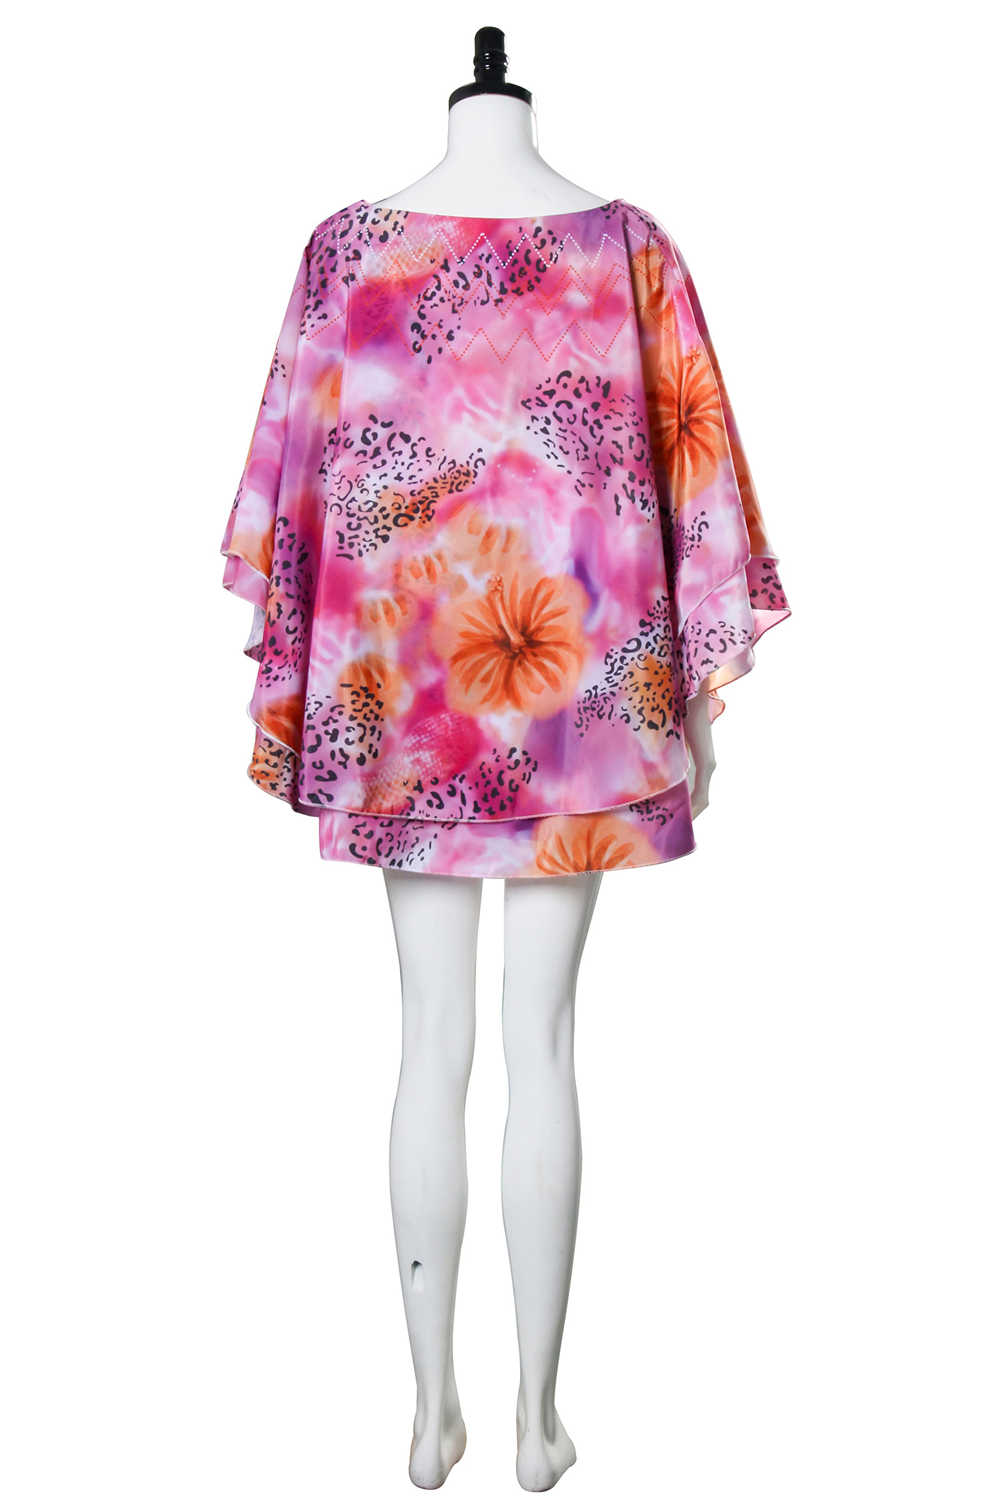 Carole Baskin Costume Shirt for Women Joe Exotic Dolman Wide Elegant Cape Cloak Sleeve with Flower Garland Outfit